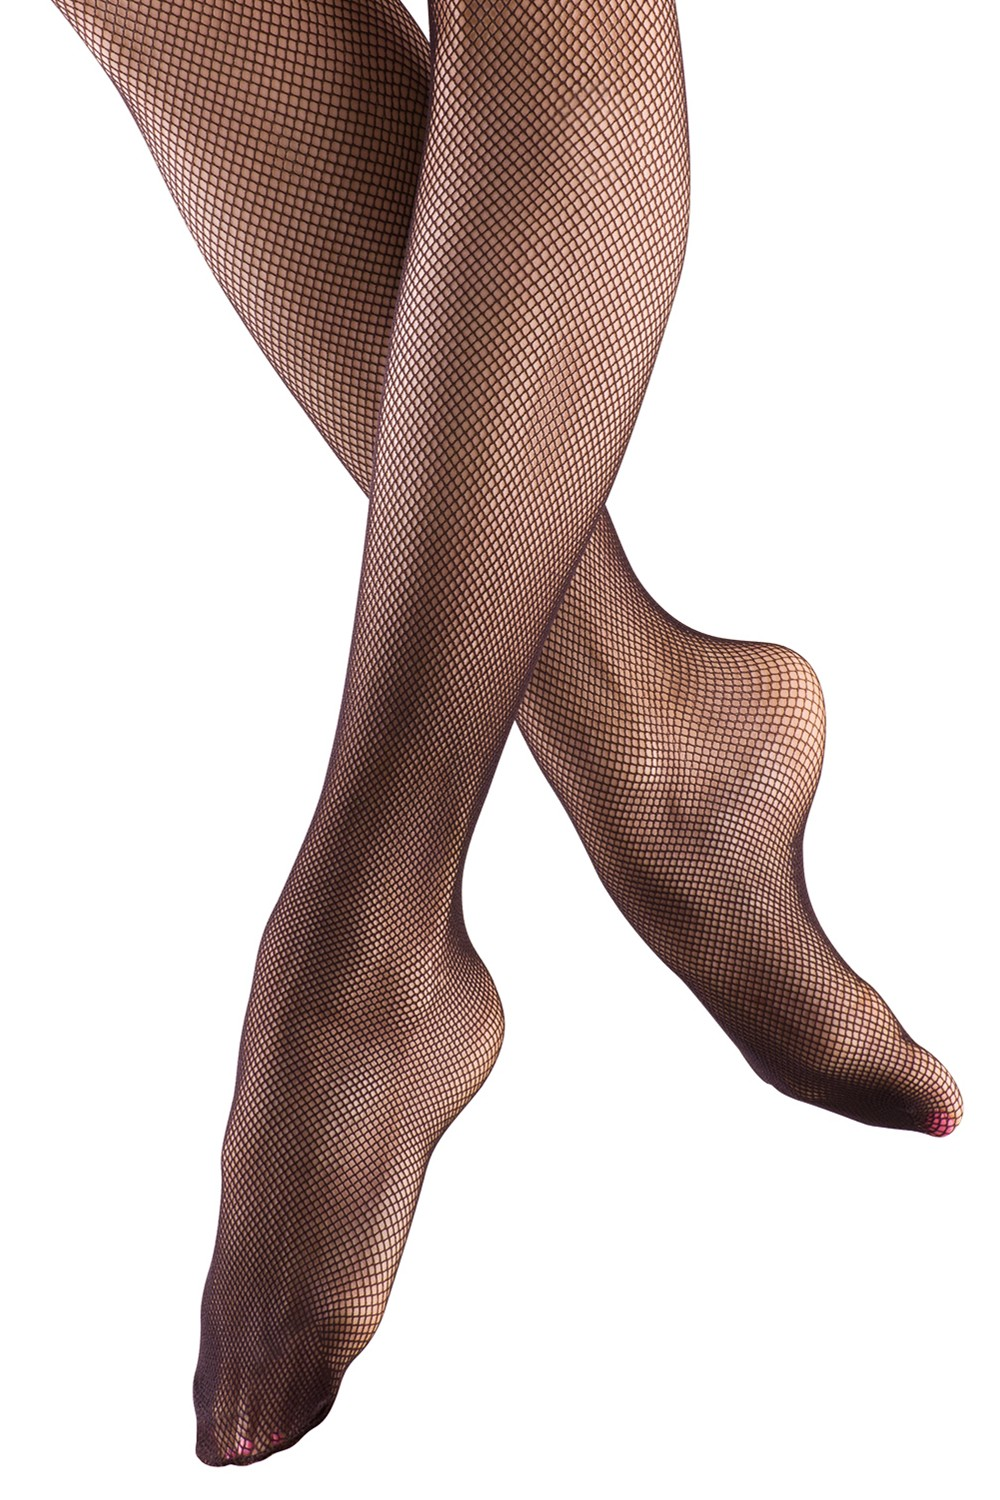 Fishnet Tight Women's Dance Tights